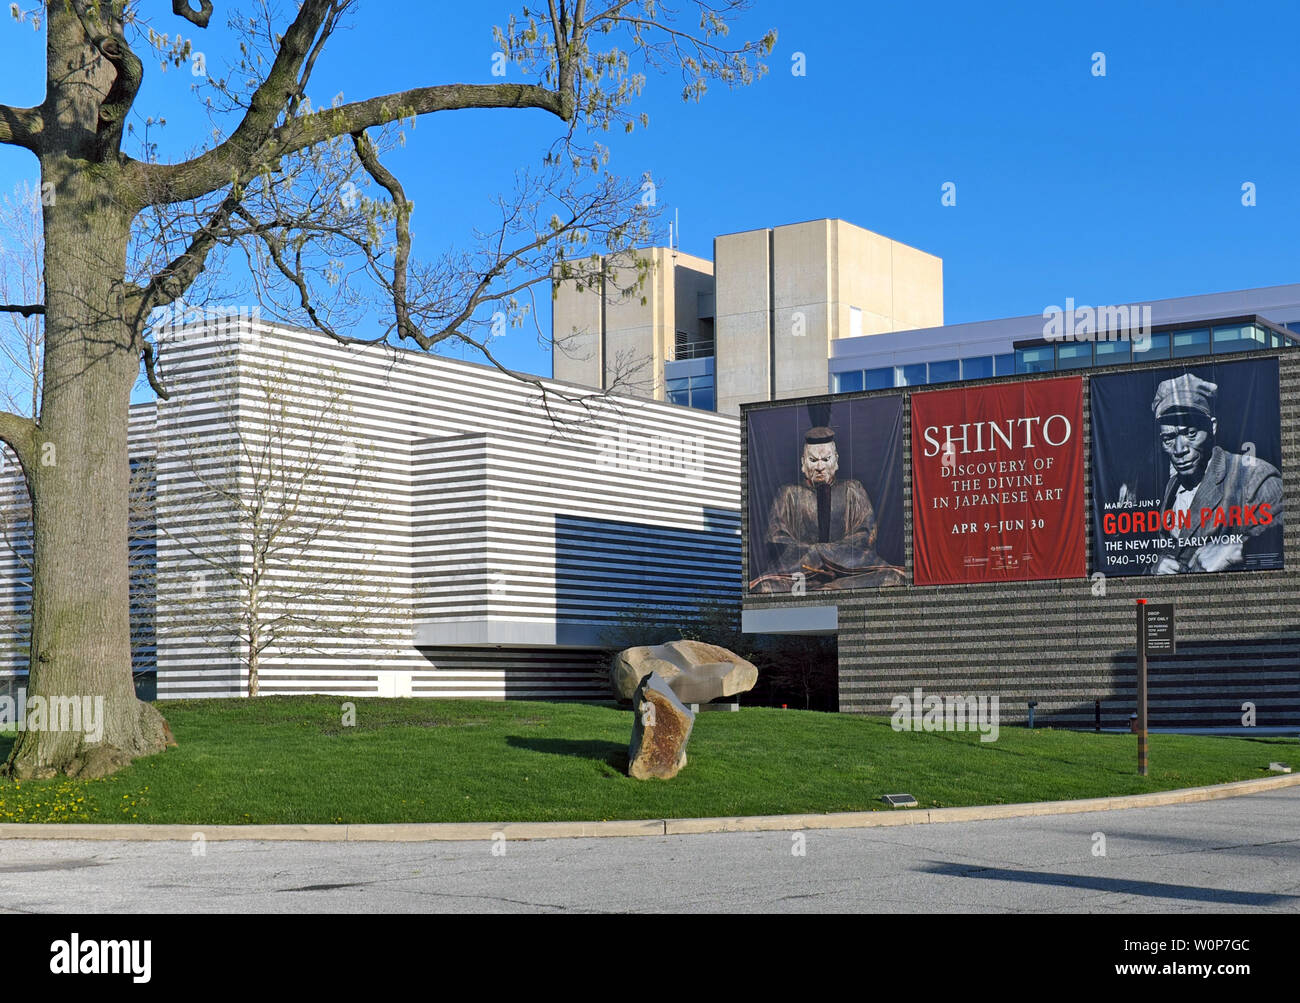 The Cleveland Museum of Art in the Wade Park District of Cleveland, Ohio, USA. Stock Photo